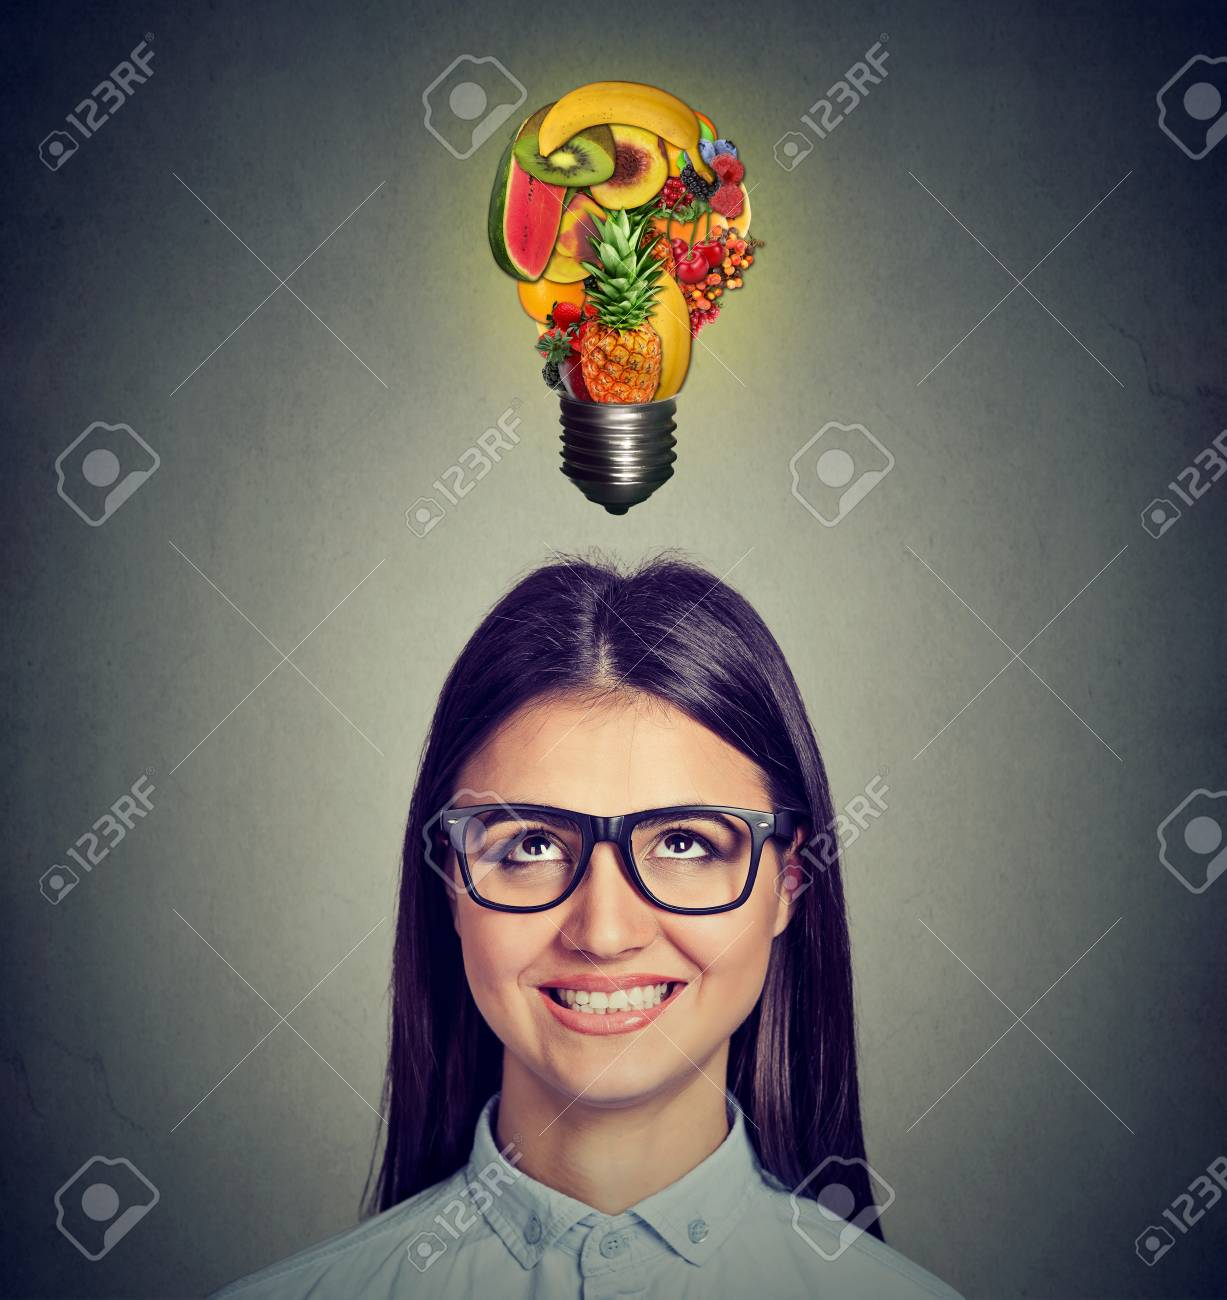 eating healthy diet tips concept headshot of a woman looking